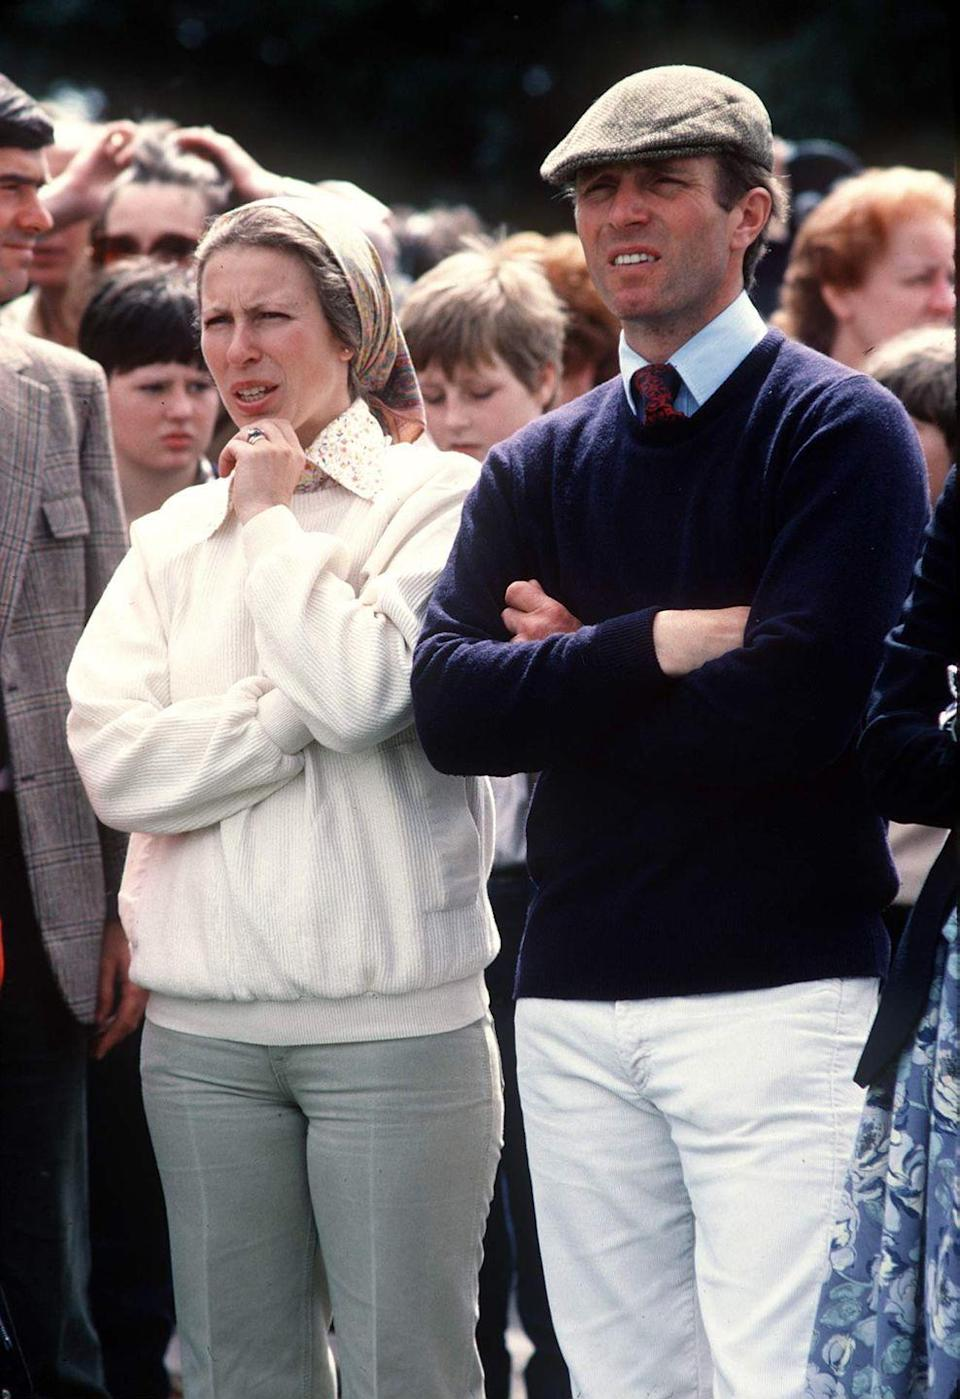 """<p>The Queen's only daughter, Princess Anne, announced her divorce from Captain Mark Phillips in 1989, which was finalized in 1992. The couple had been married since 1973 and shared two children. The Princess <a href=""""https://www.nytimes.com/1992/12/06/world/princess-anne-to-remarry.html"""" rel=""""nofollow noopener"""" target=""""_blank"""" data-ylk=""""slk:married Timothy Laurence"""" class=""""link rapid-noclick-resp"""">married Timothy Laurence</a> shortly after her divorce was finalized.</p>"""